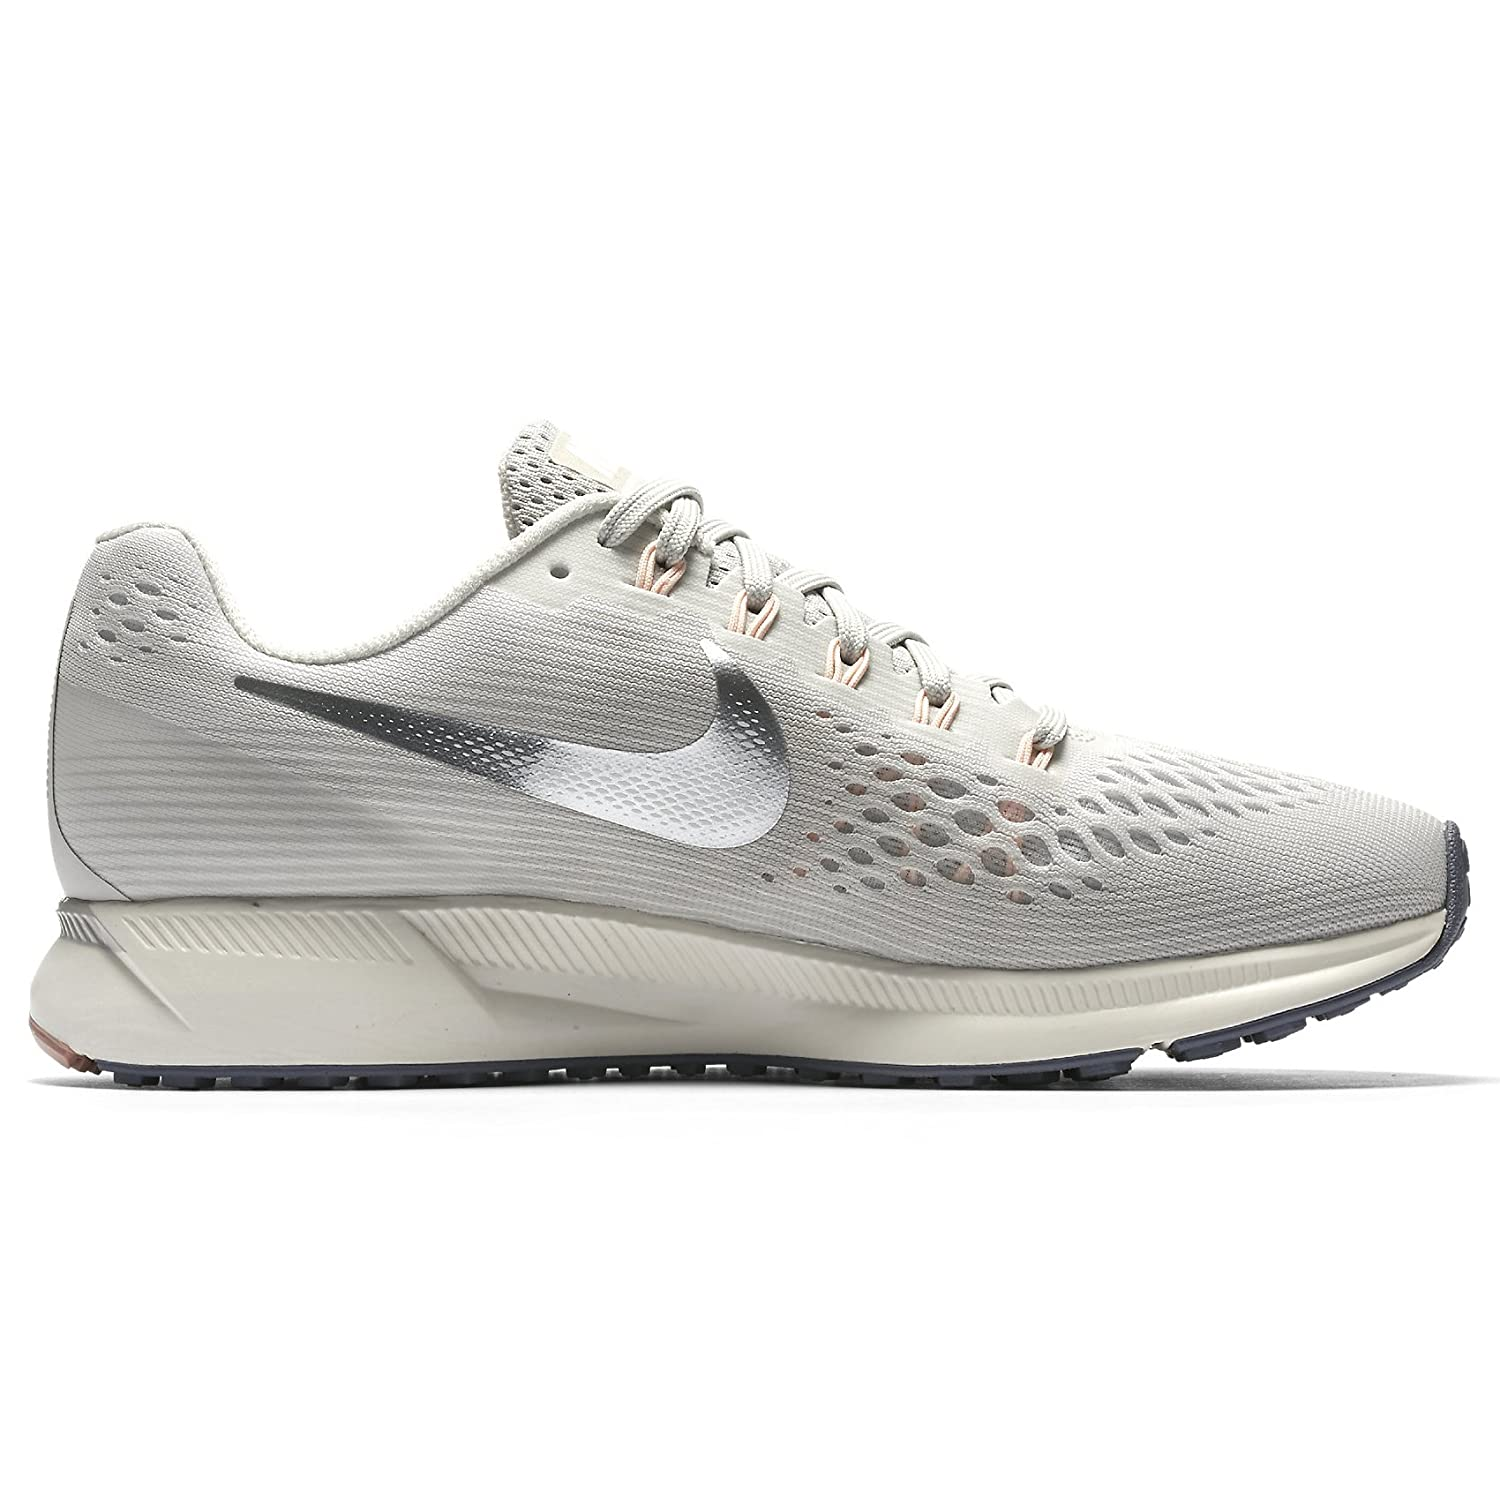 NIKE Women's Air Zoom Pegasus 10.5 34 Running Shoe B01N4I8UWS 10.5 Pegasus B(M) US|Light Bone/Chrome/Pale Grey 8b47d0